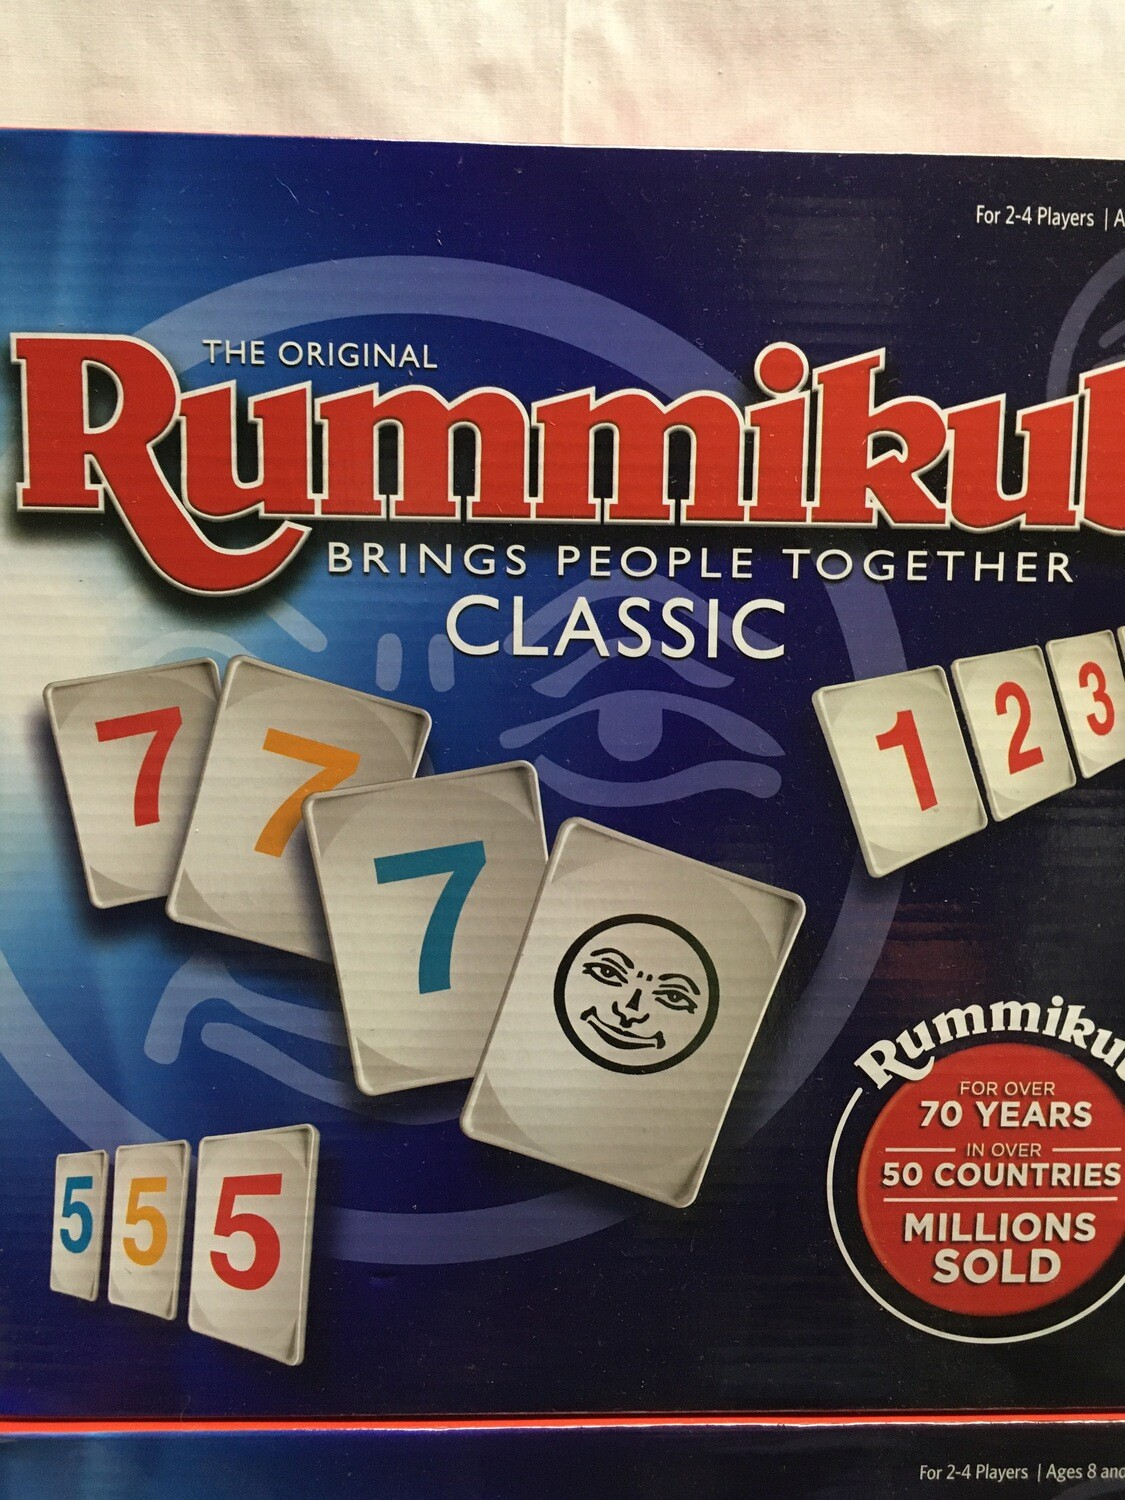 Rummikub - Rummy Tile Game, ages 8 and up